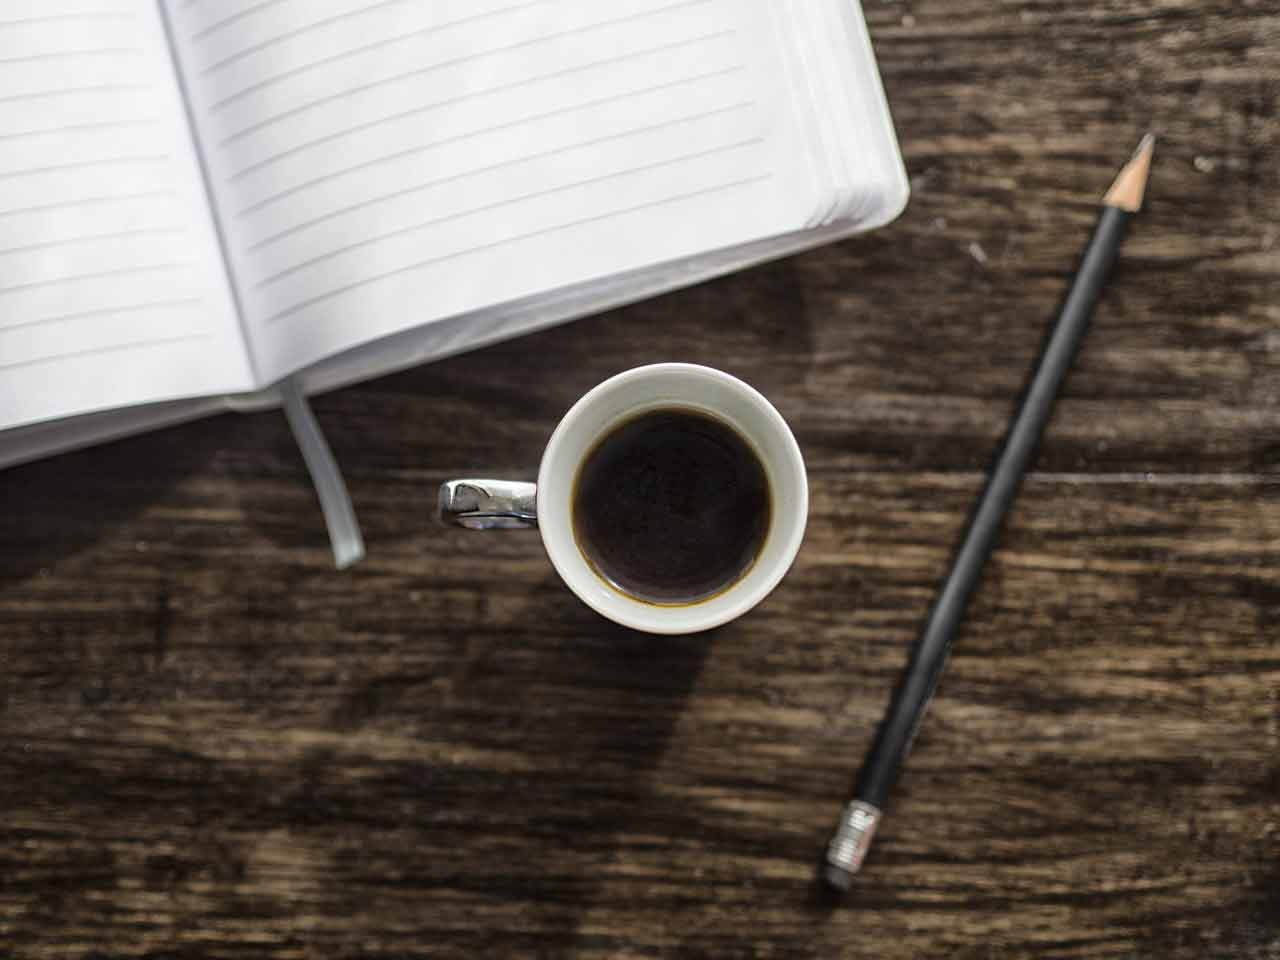 A photo of an empty journal, a cup of coffee, and a pencil.